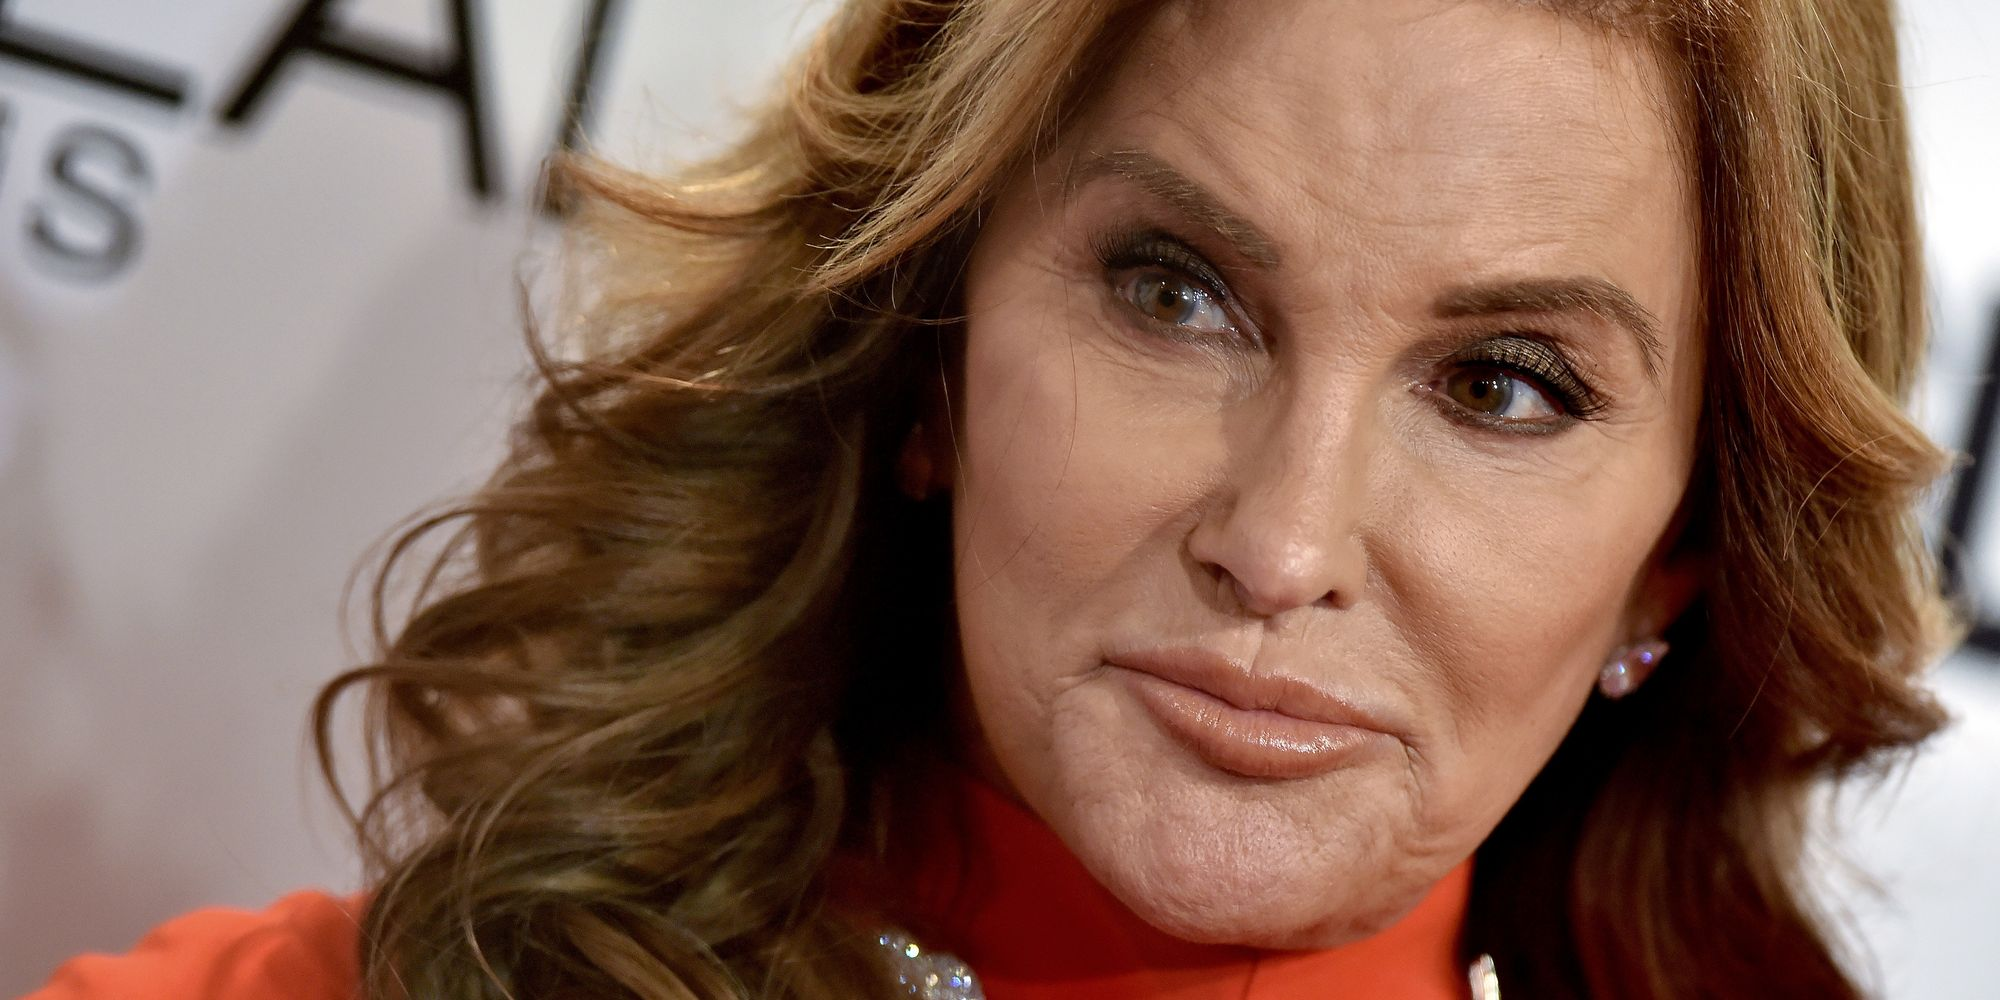 Caitlyn Jenner Rep Responds To Rumors Of Inaugural Dance With Trump